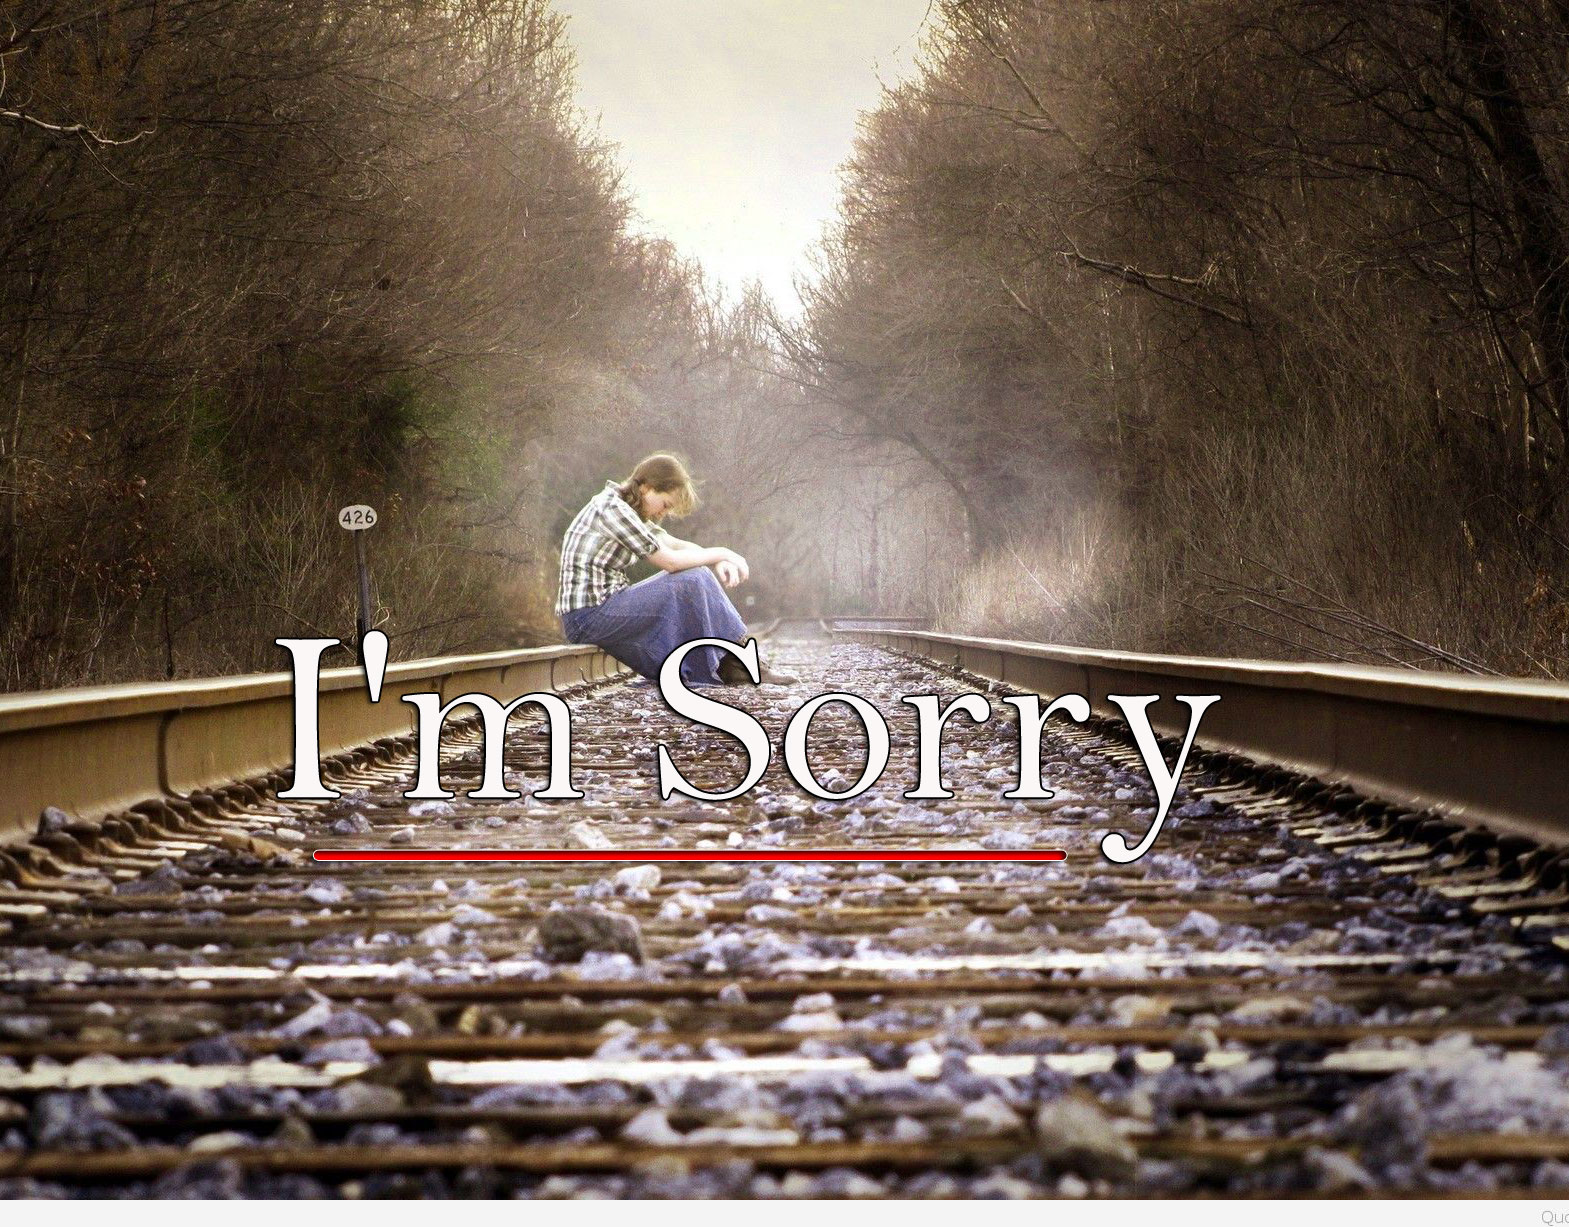 l am sorry Pictures 2021